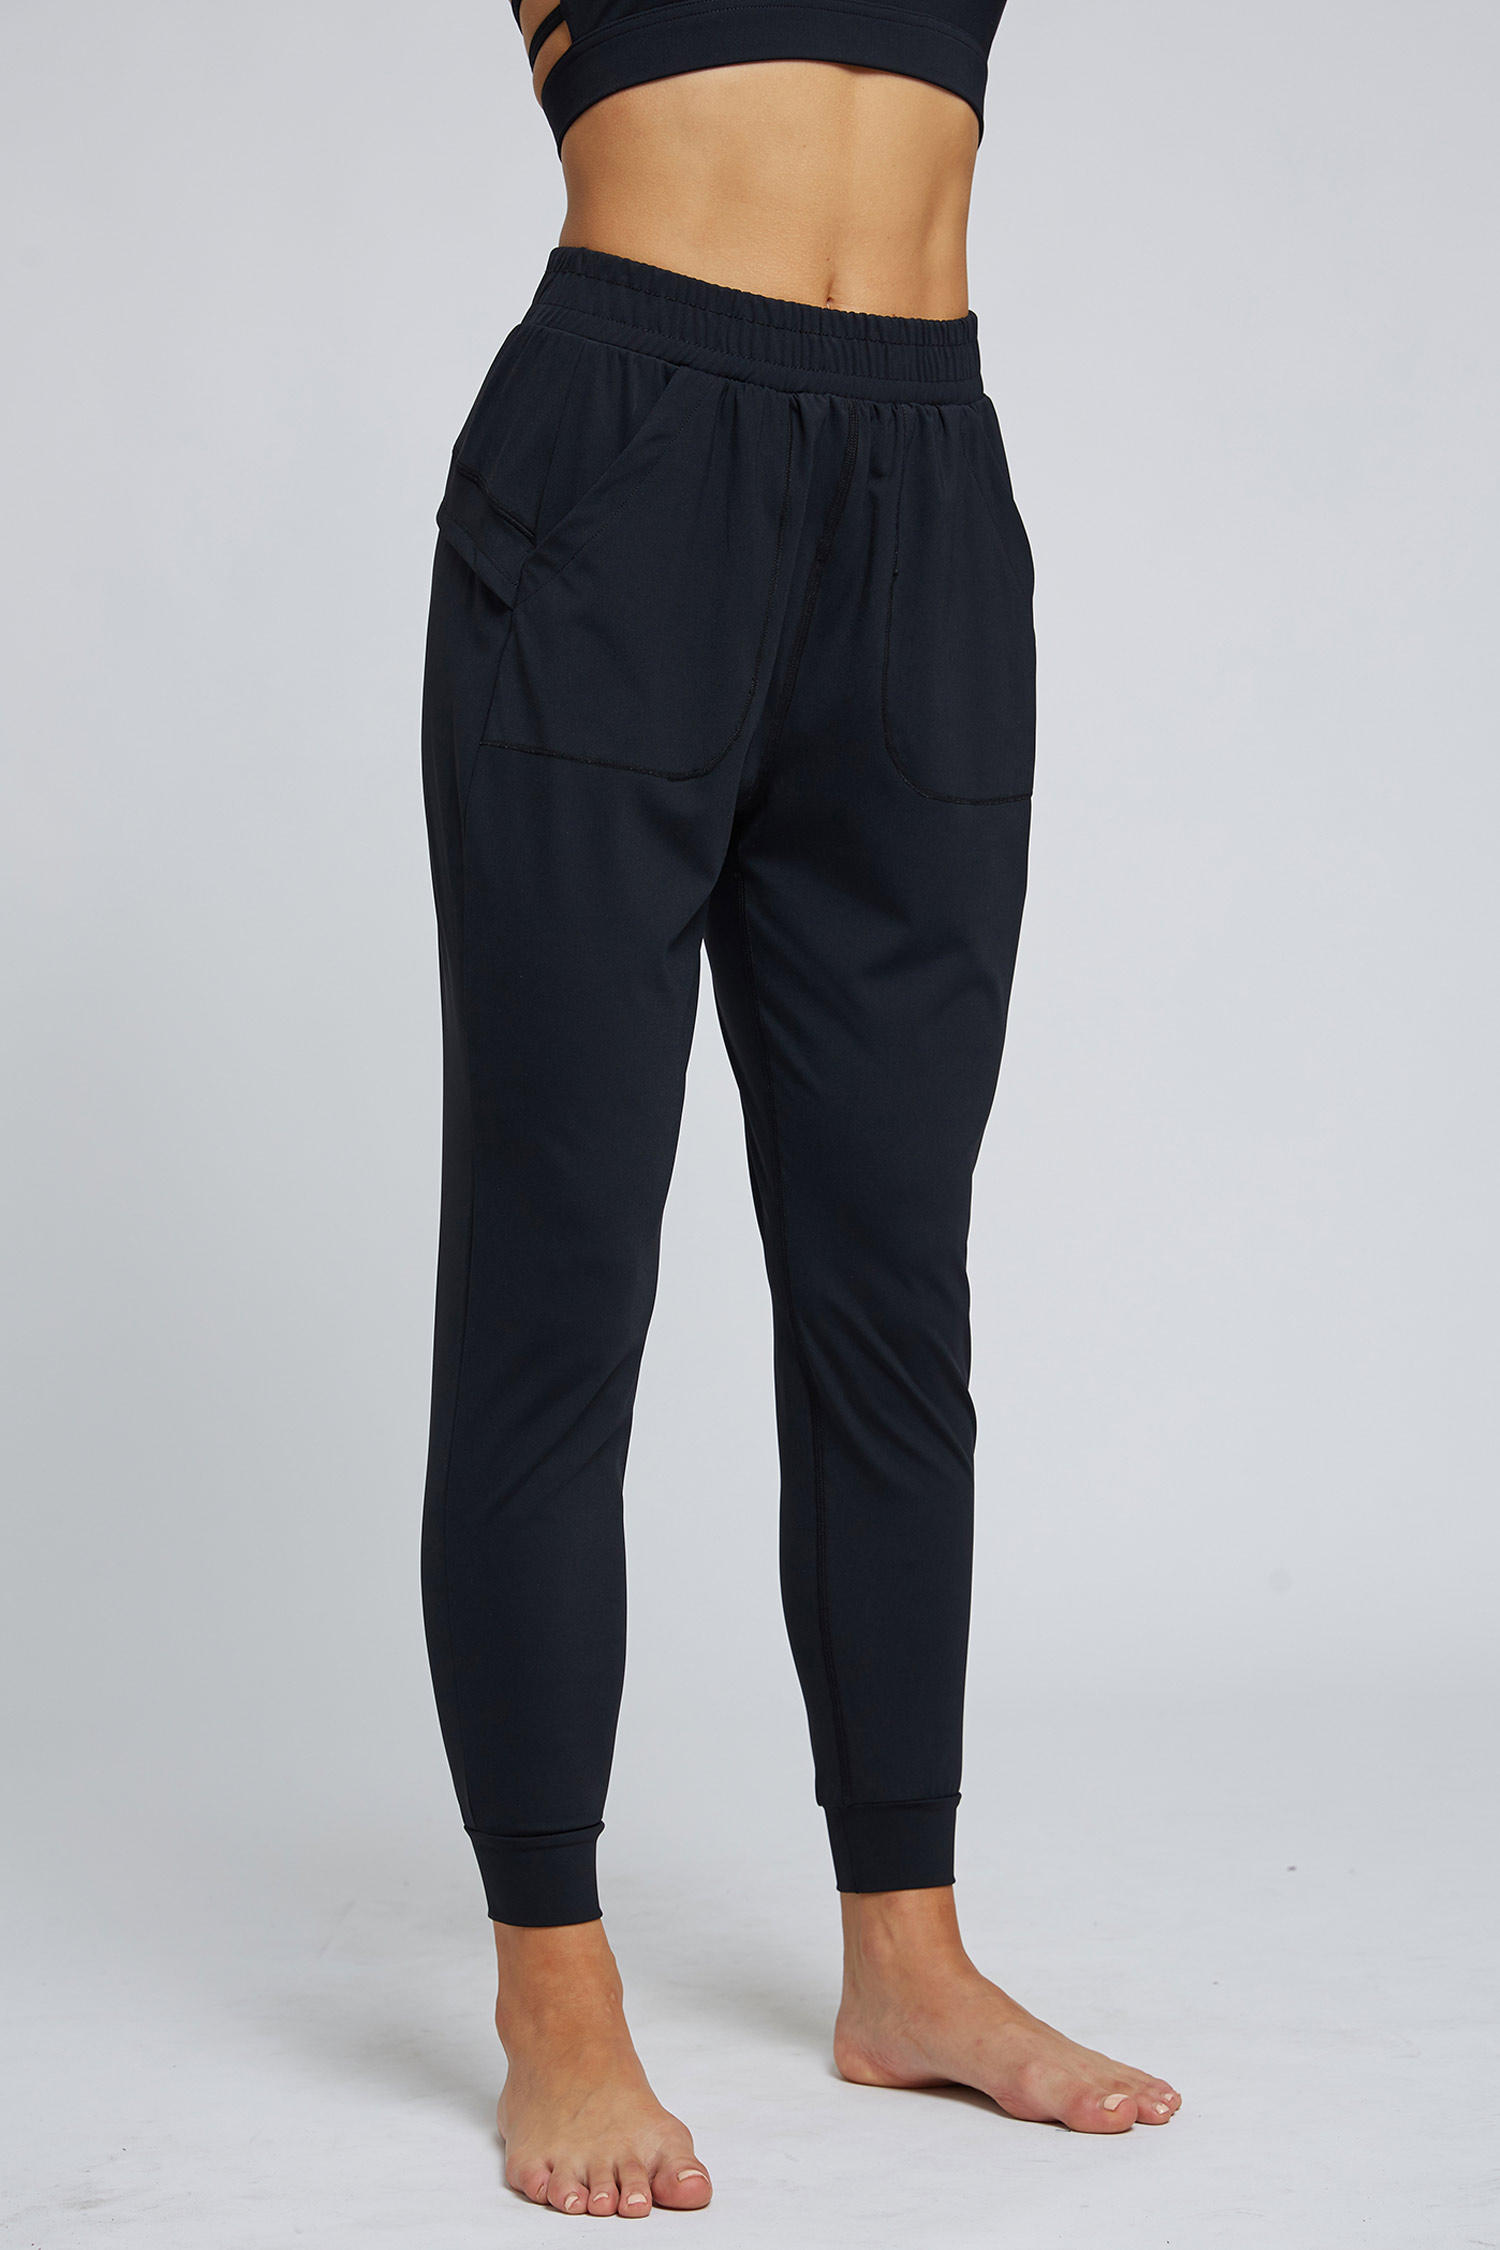 Black Shirred Waist Pocket Detail Sports Pants